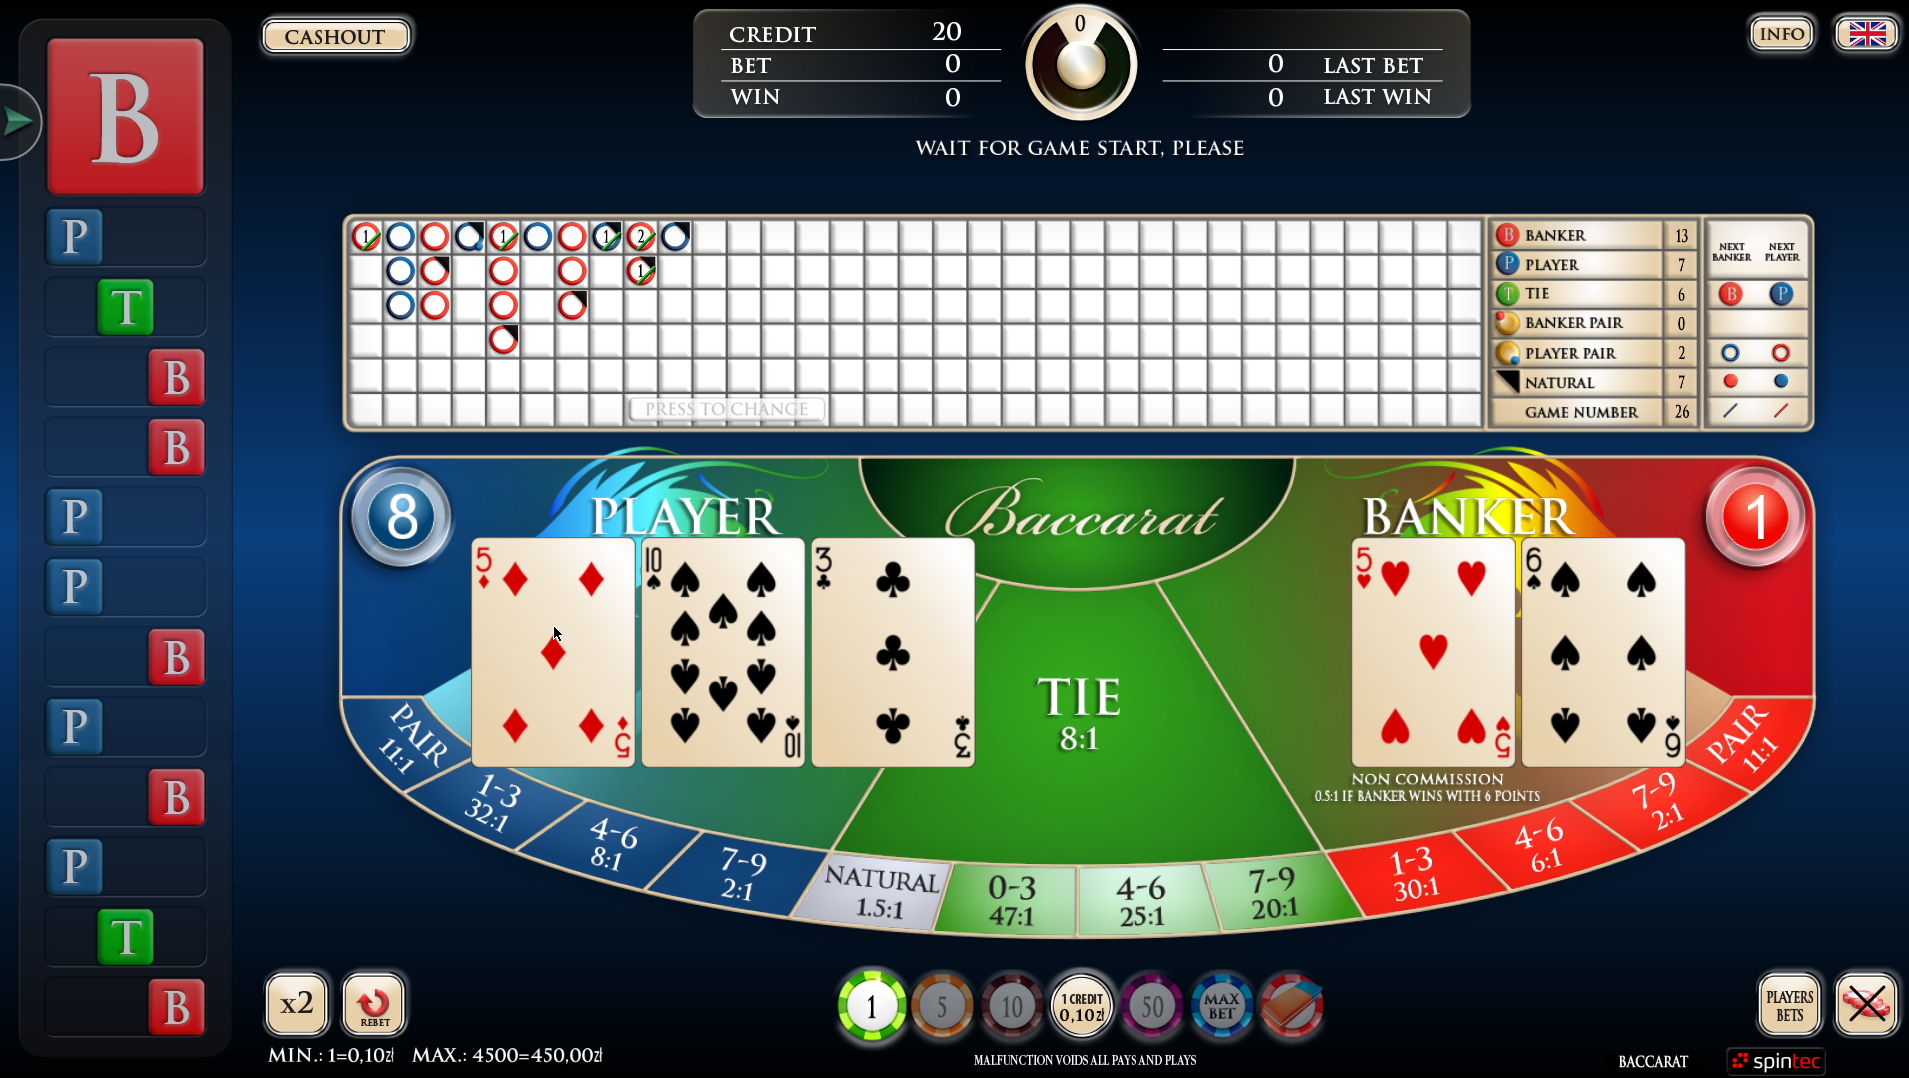 Electronic Baccarat Karma Gen2 – A card game full of suspense and  excitement | Spintec